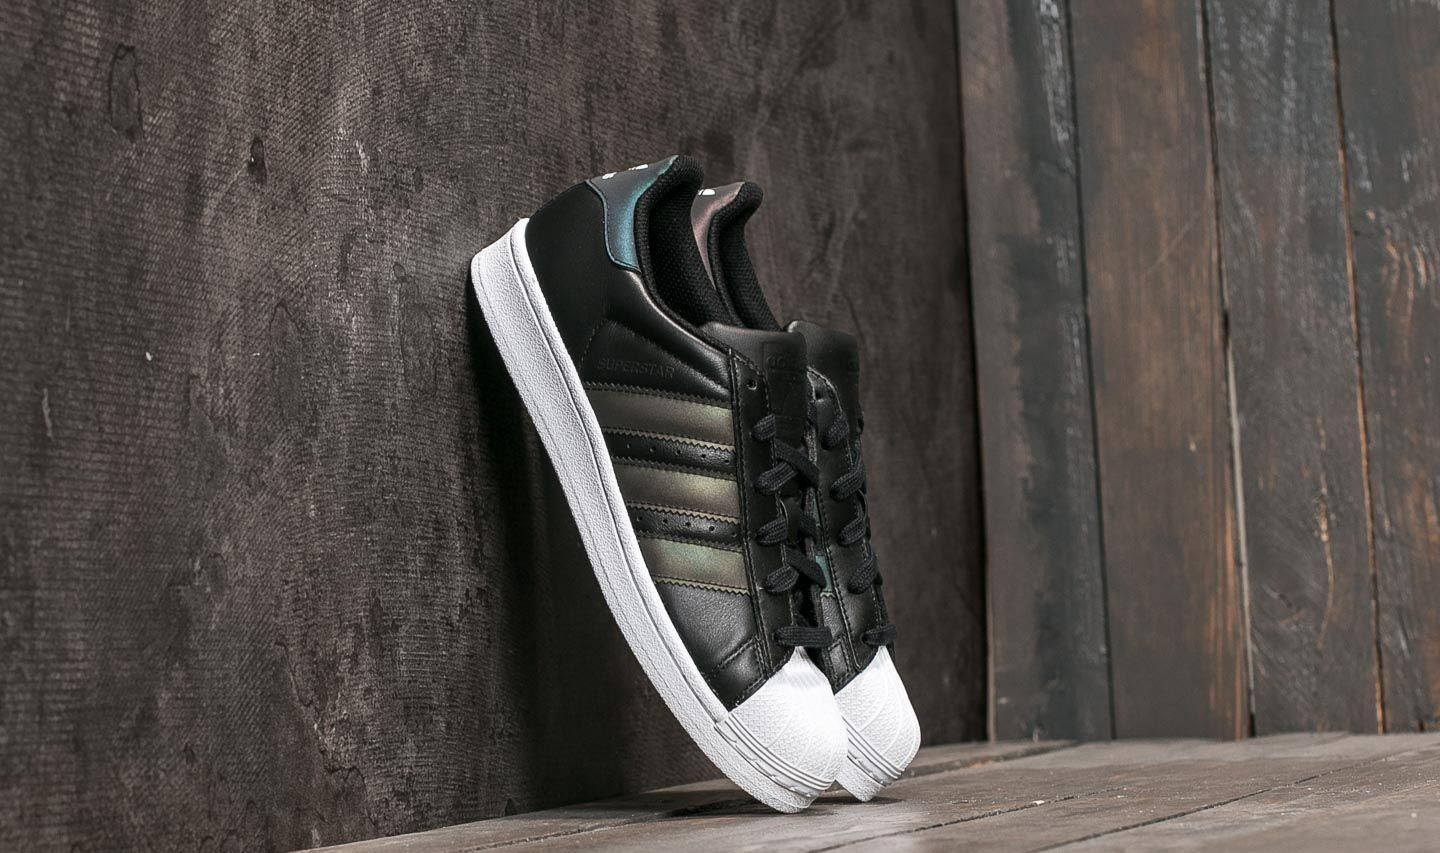 adidas Superstar Holographic Big Kids Db1209 White Black Shell Shoes Size 7